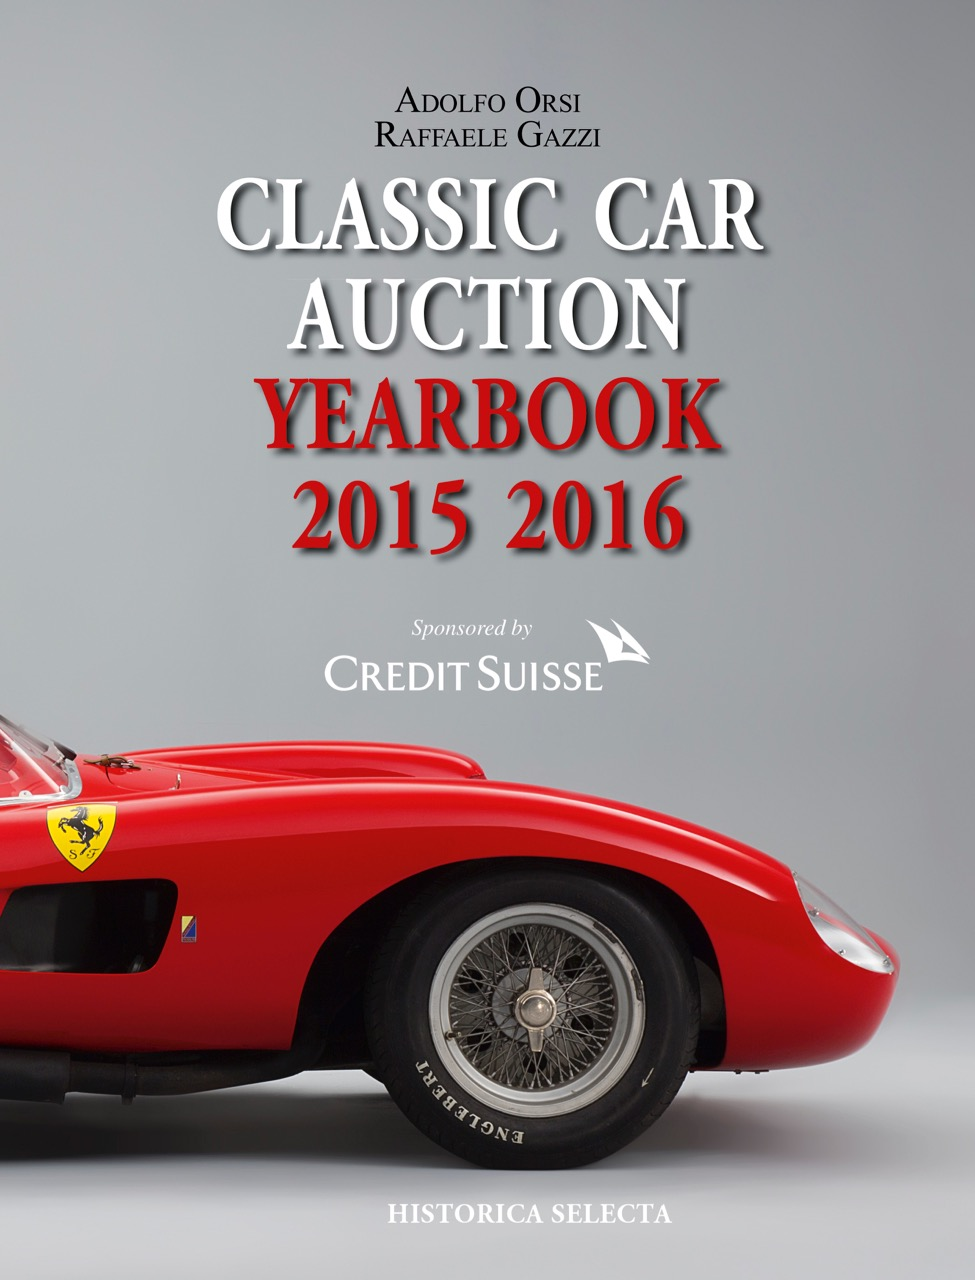 2015-2016 edition publishes this week | Historic Selectra photos